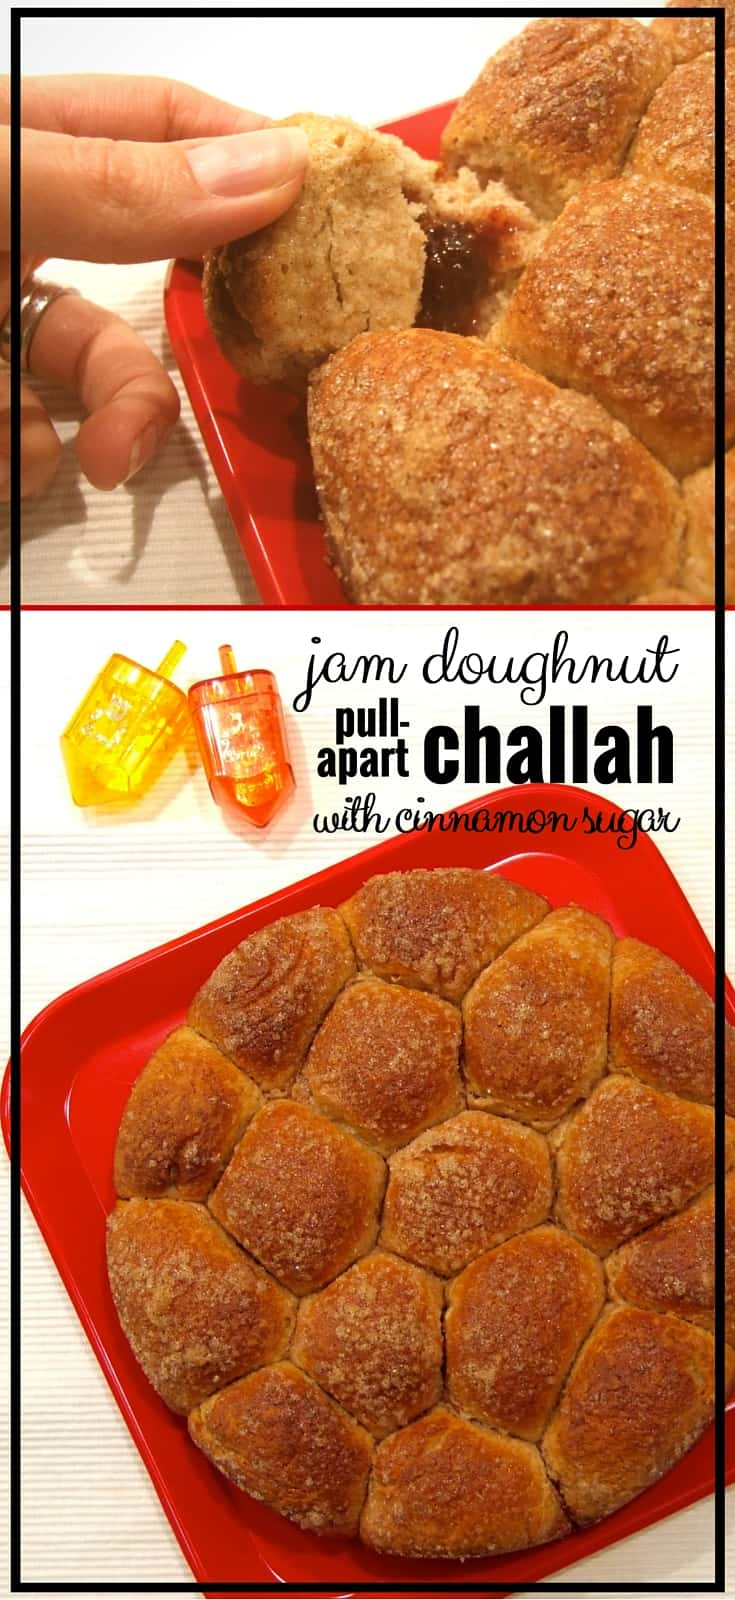 Pull apart the soft, fluffy, cinnamon scented balls of sweet challah, & bite into a centre of deliciously fruity strawberry jam. A Chanukah Shabbat treat!